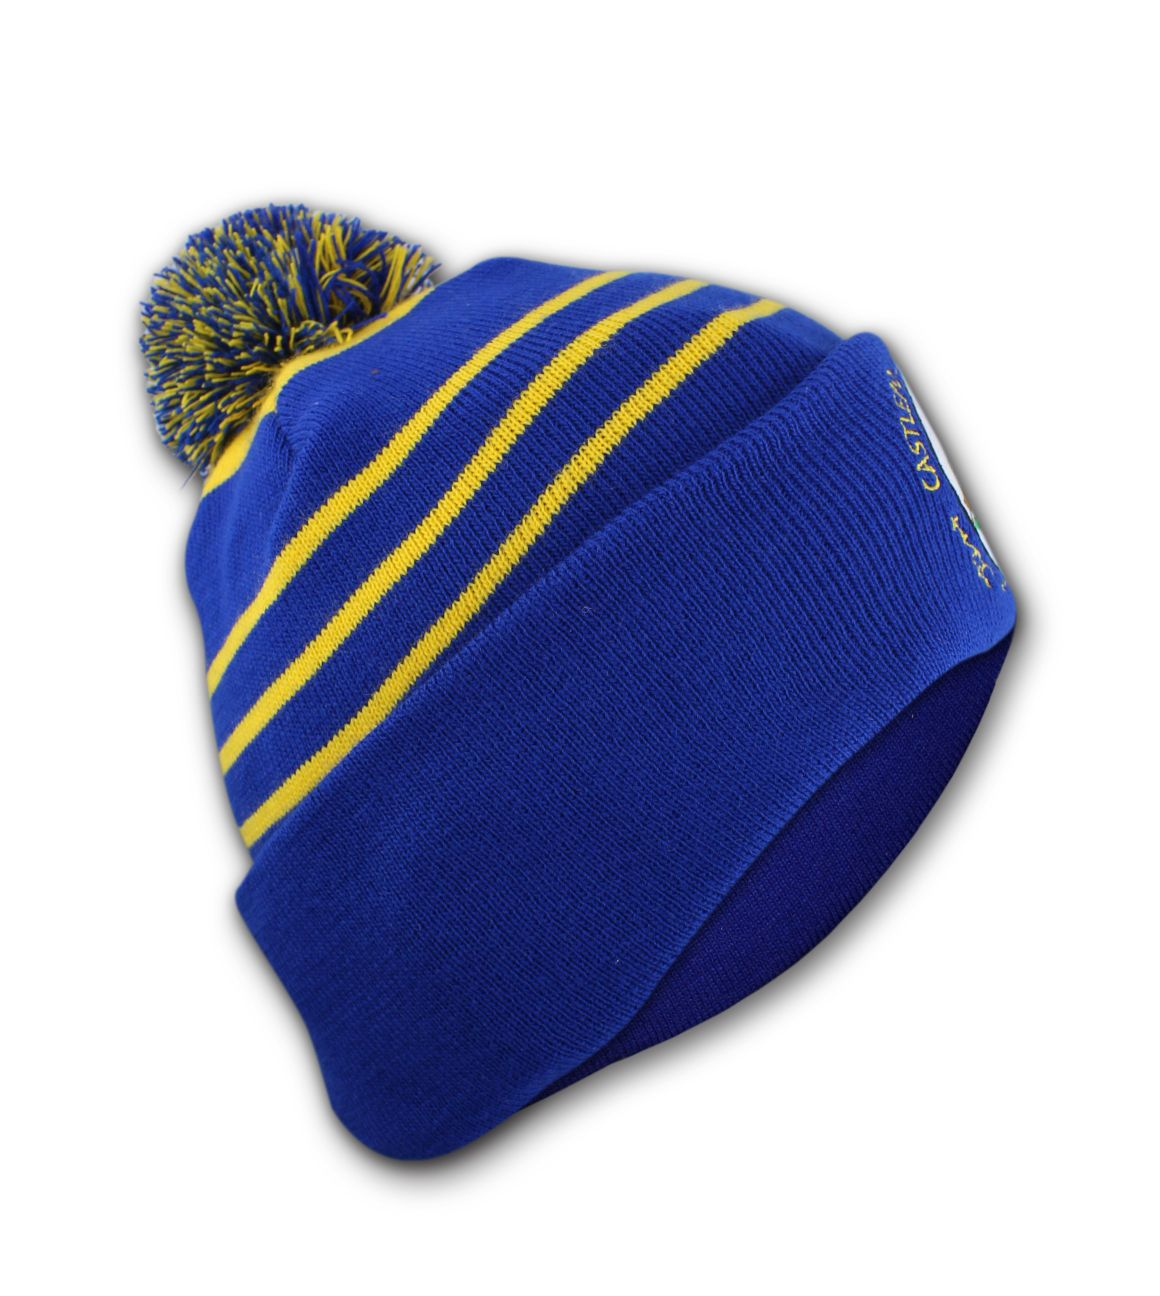 CASTLEPOLLARD BOBBLE HAT SIDE